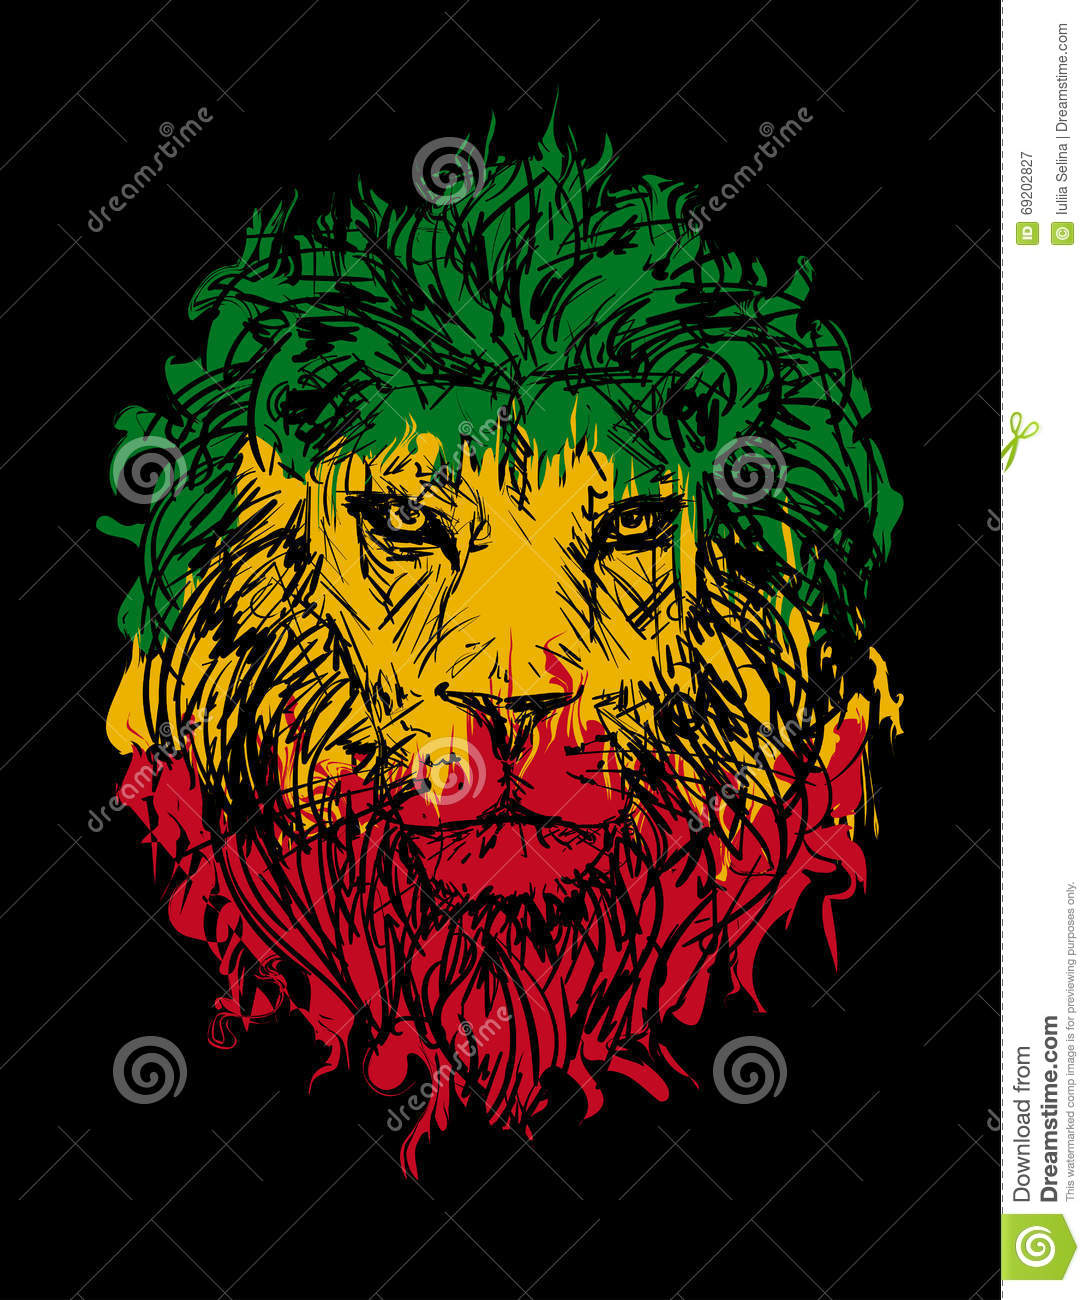 Rasta Lion Stock Illustrations 107 Rasta Lion Stock Illustrations Vectors Clipart Dreamstime A wide variety of lion rasta options are available to you, such as usage, material, and style. dreamstime com